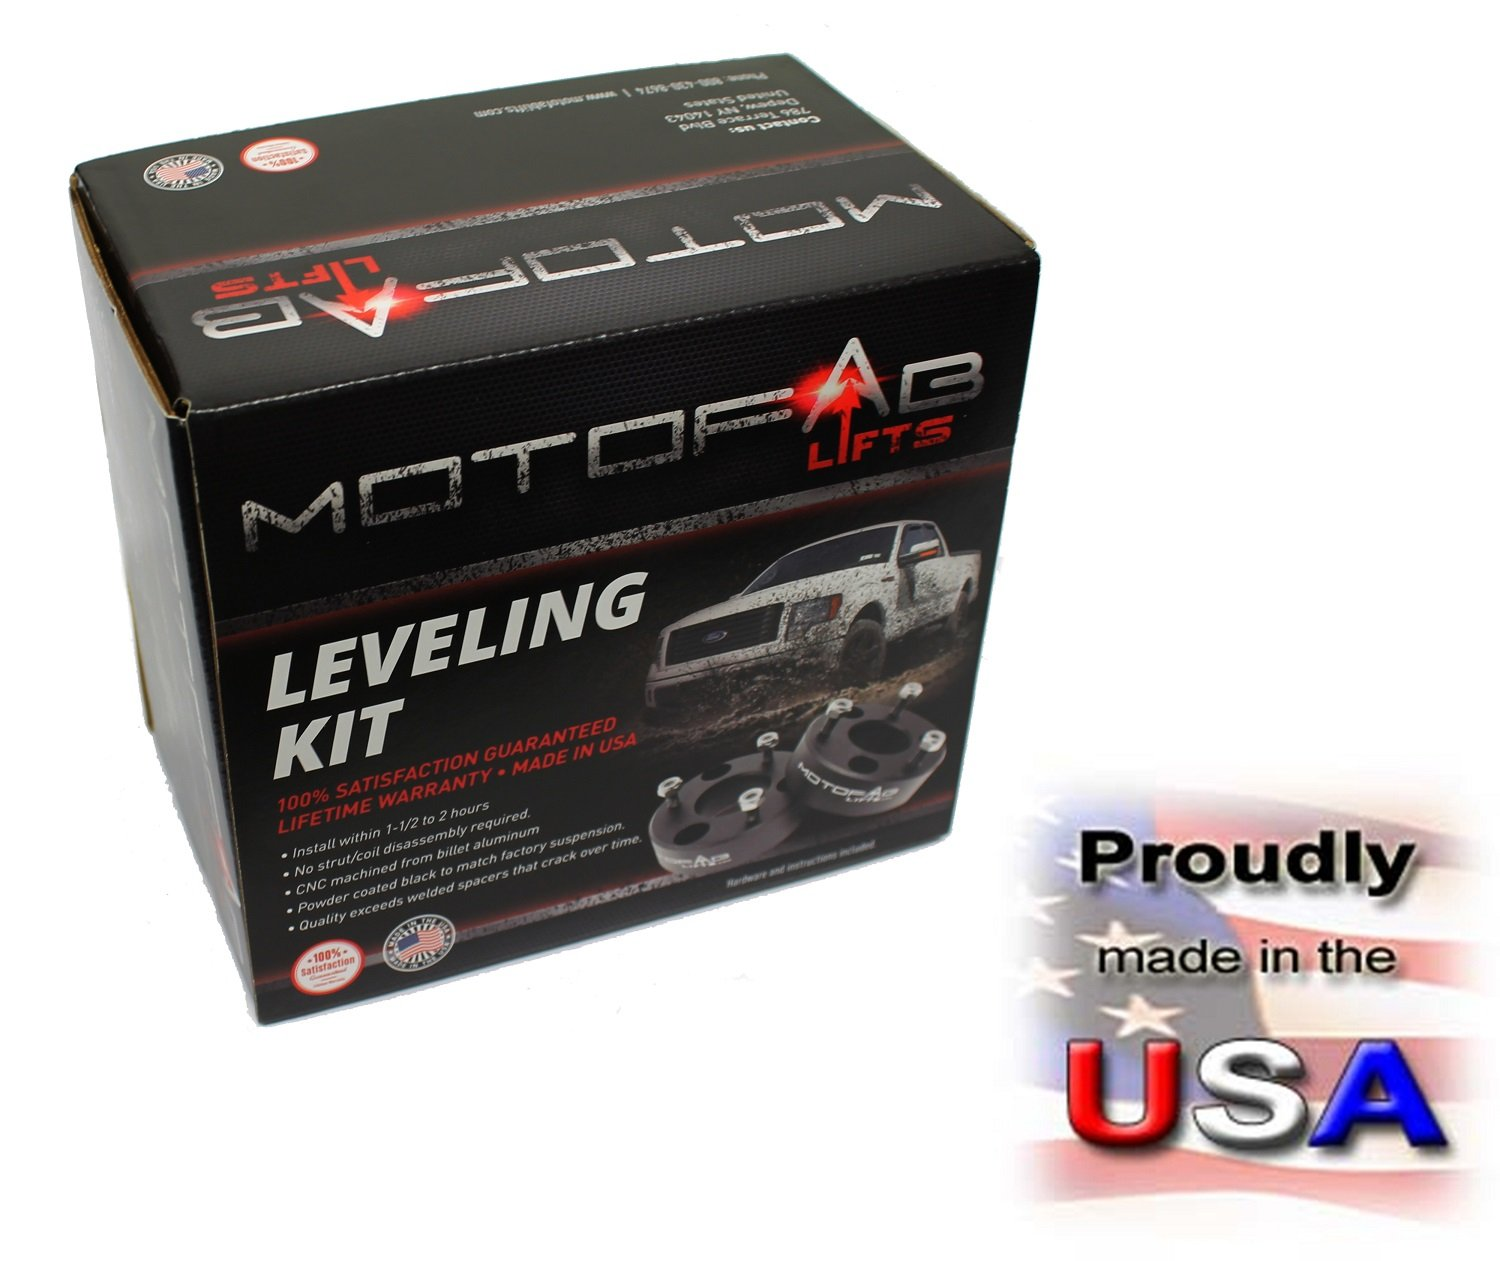 Motofab Lifts Ch 25 Front Leveling Lift Kit That 1959 Gmc Truck Headlight Switch Wiring Will Raise The Of Your Chevy Pickup Automotive